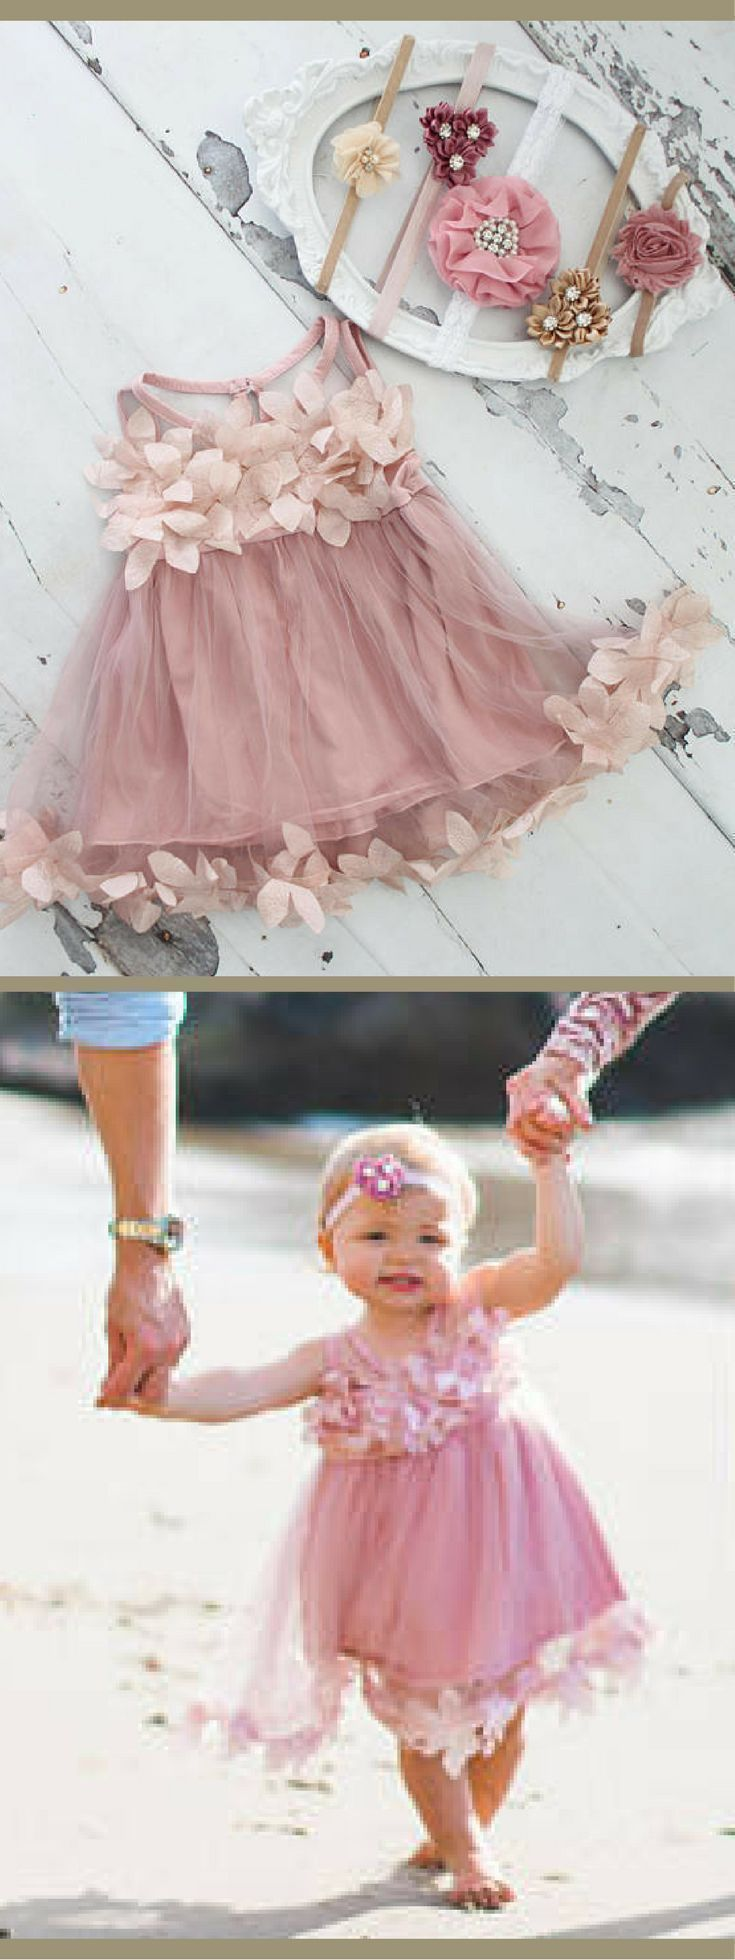 35 best wedding images on Pinterest | Flower girls, Bridesmaid gowns ...